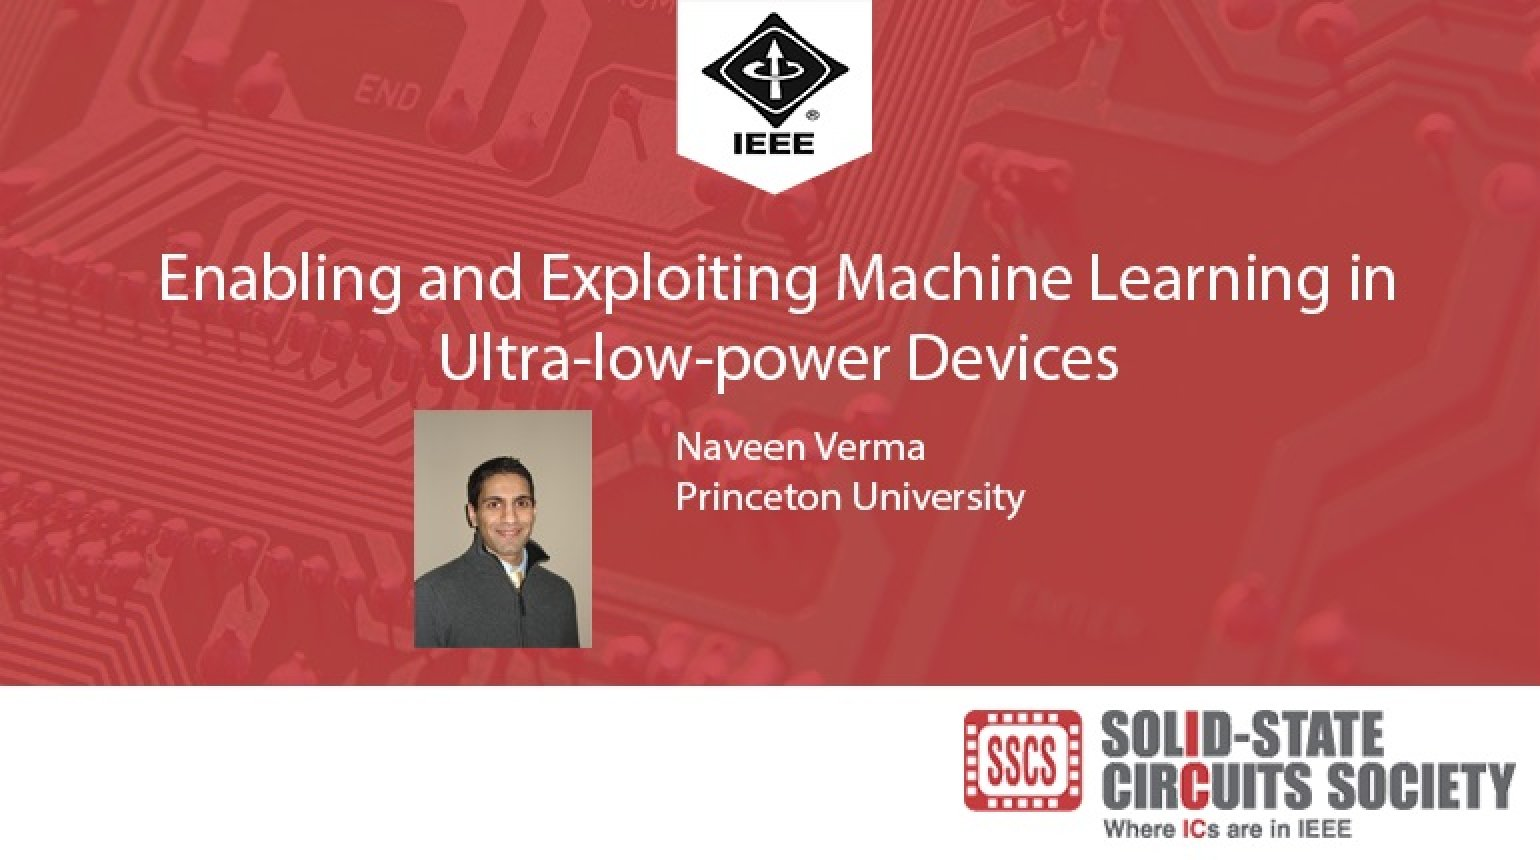 Enabling and Exploiting Machine Learning in Ultra-low-power Devices Video